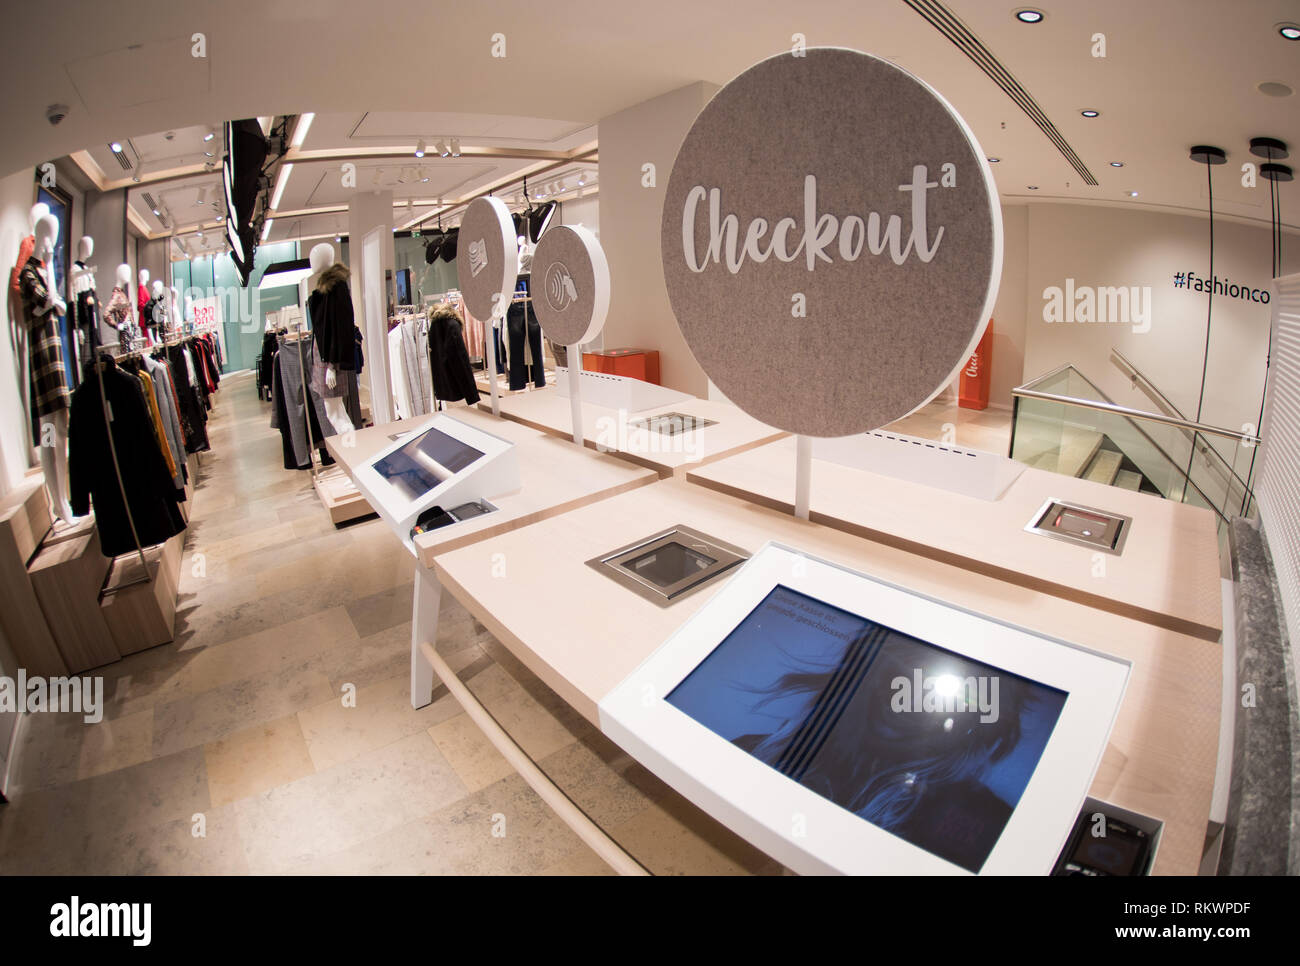 0tto Online Shop Hamburg Germany 04th Feb 2019 The Checkout Area For Individual